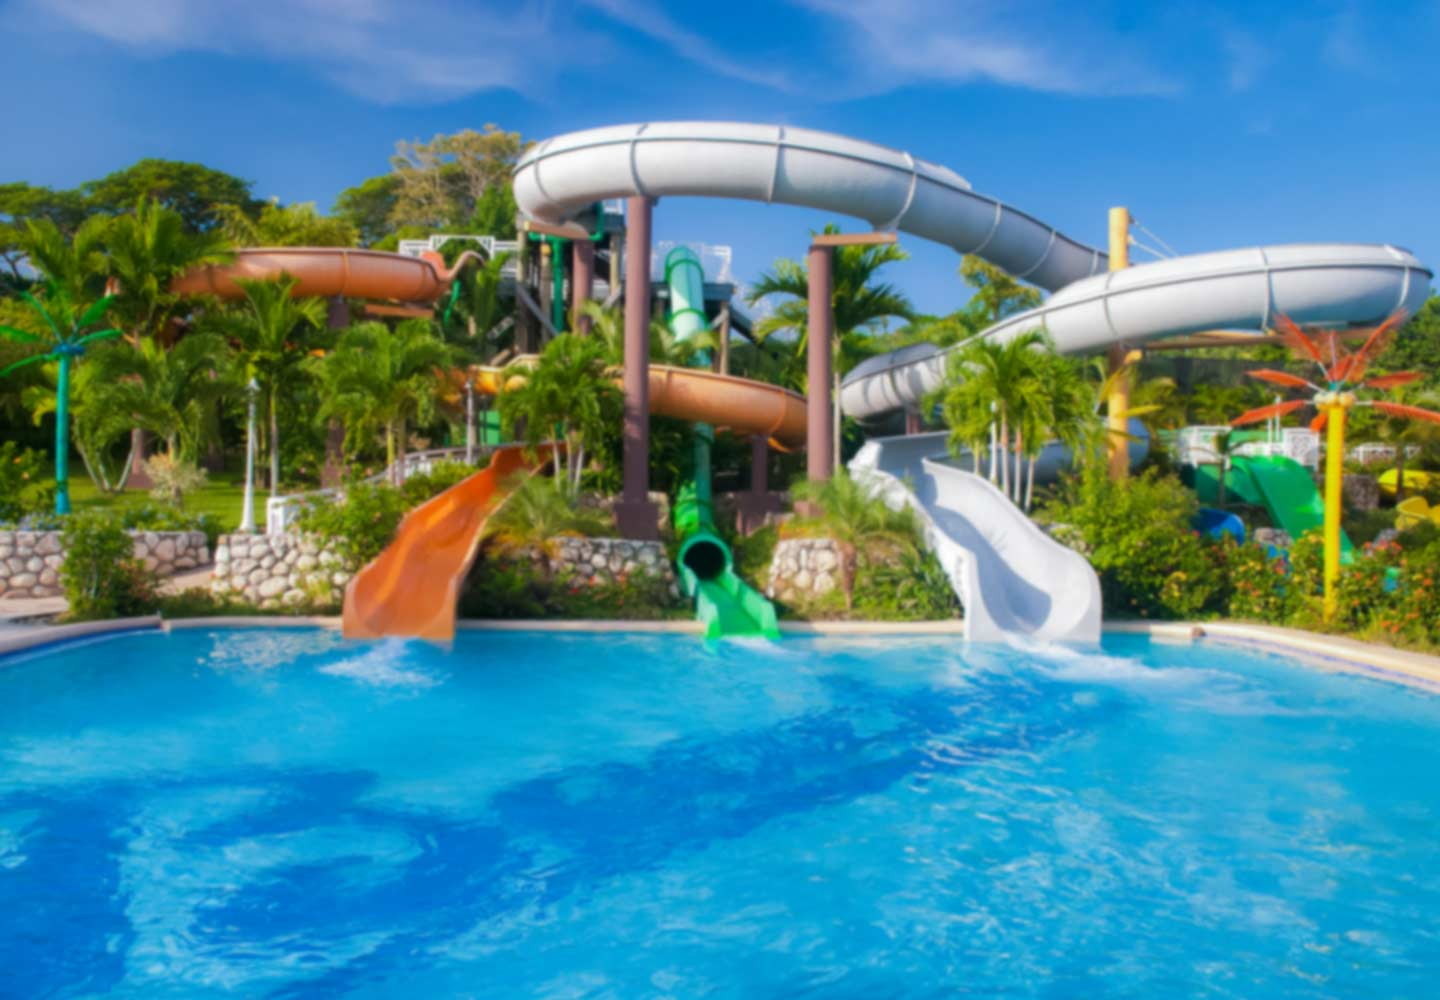 Pirates Island Water Park Jamaica Contact Number